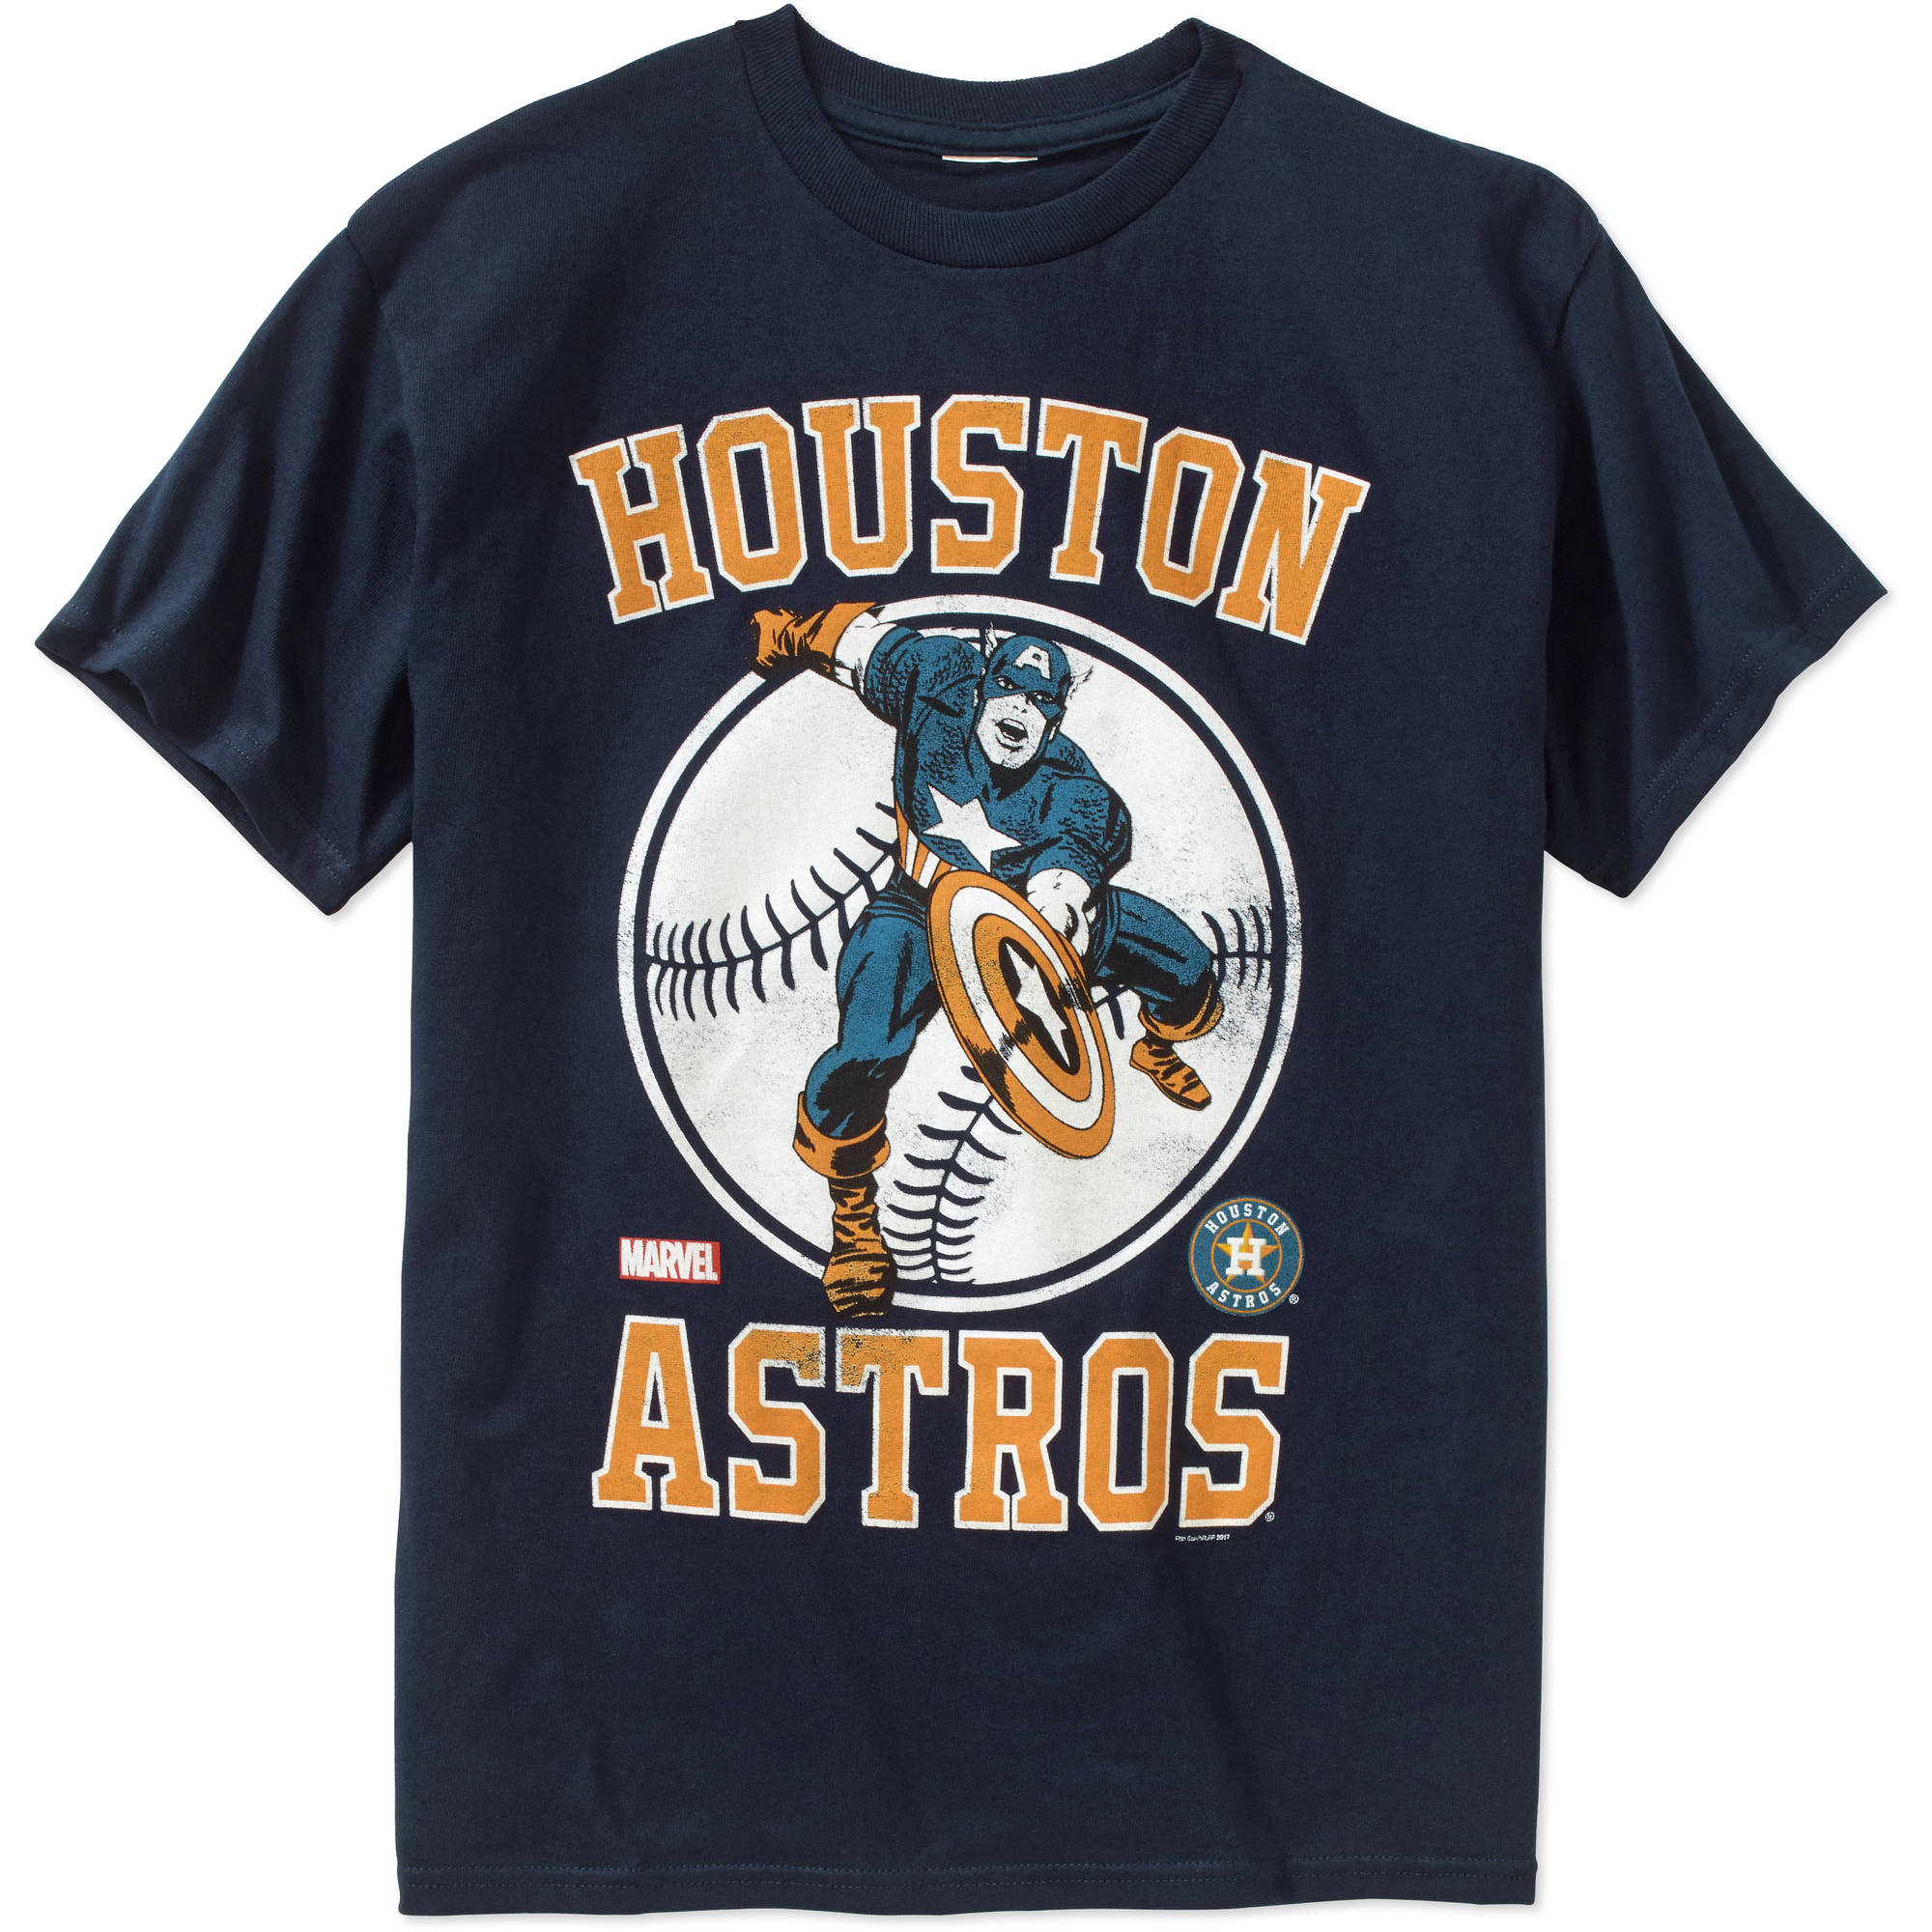 MLB Houston Astros Boys Marvel Captain America Tee